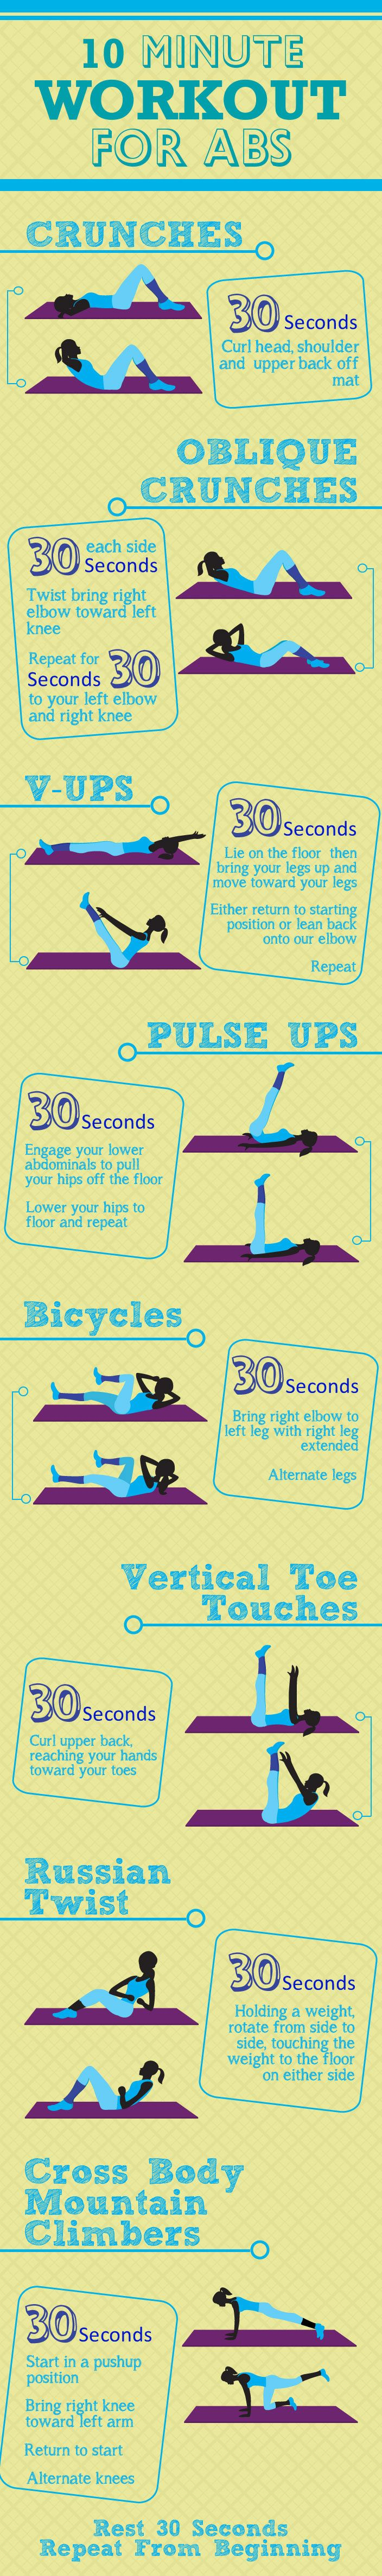 10 Minute Workout for Abs | Fitness Republic